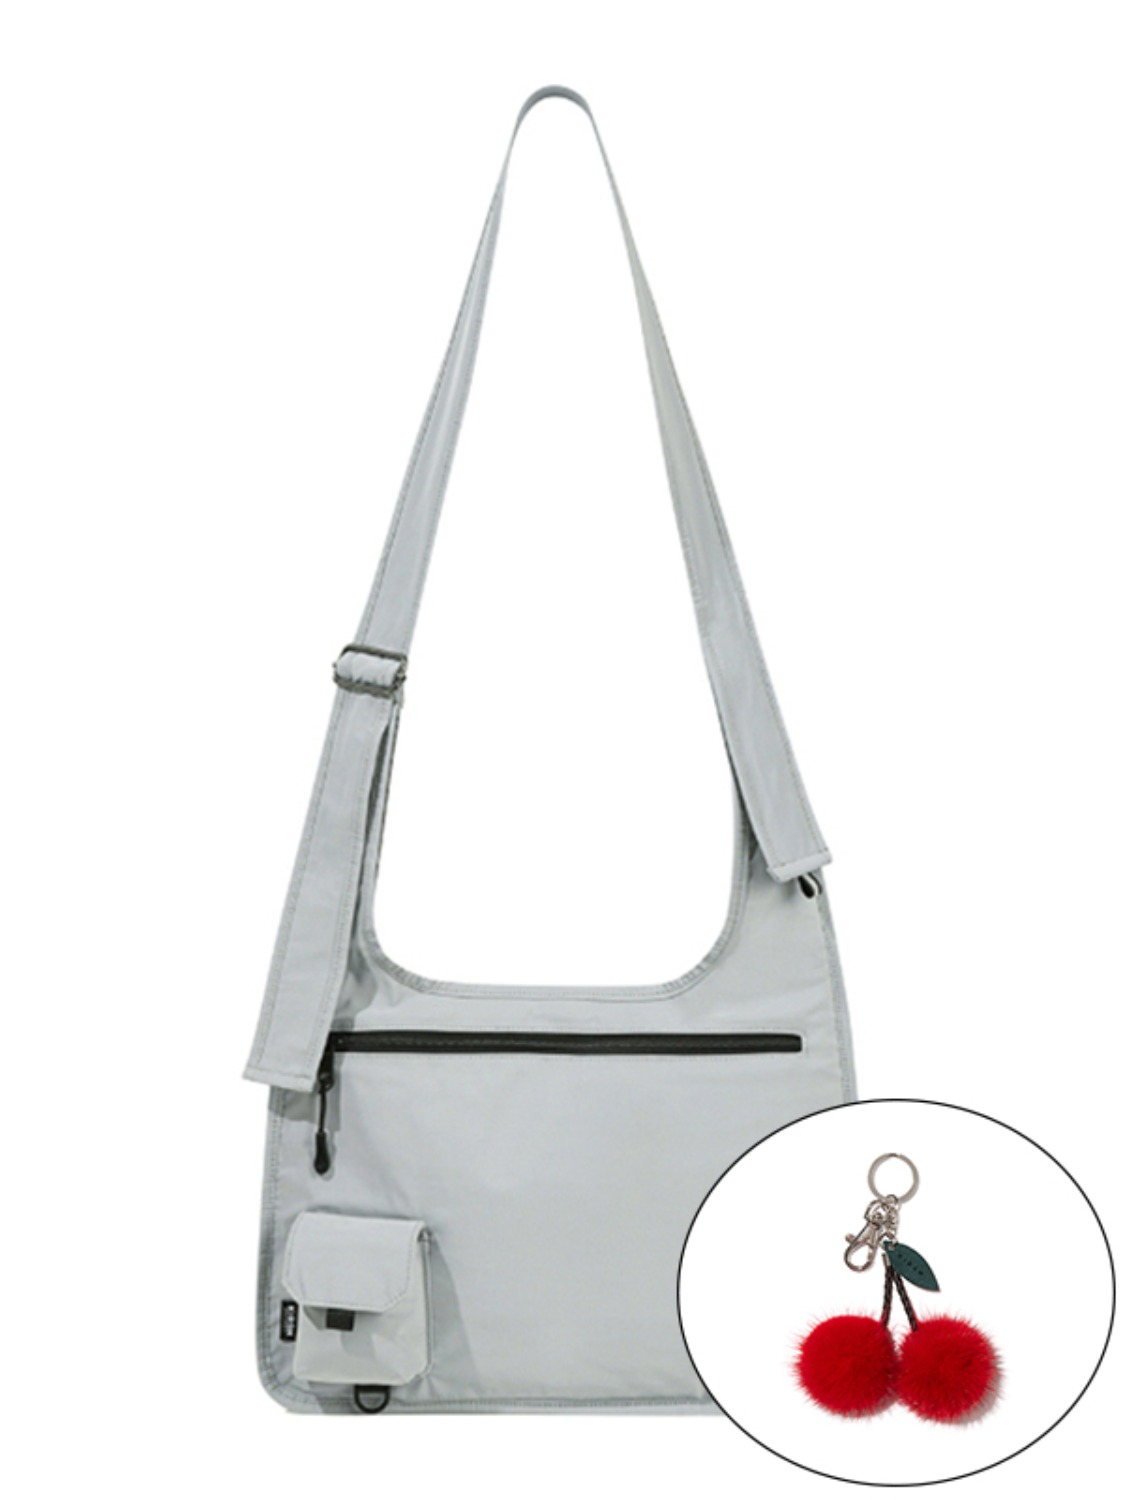 KIRSH POCKET LOGO CROSSBODY BAG KS [LIGHT GREY]